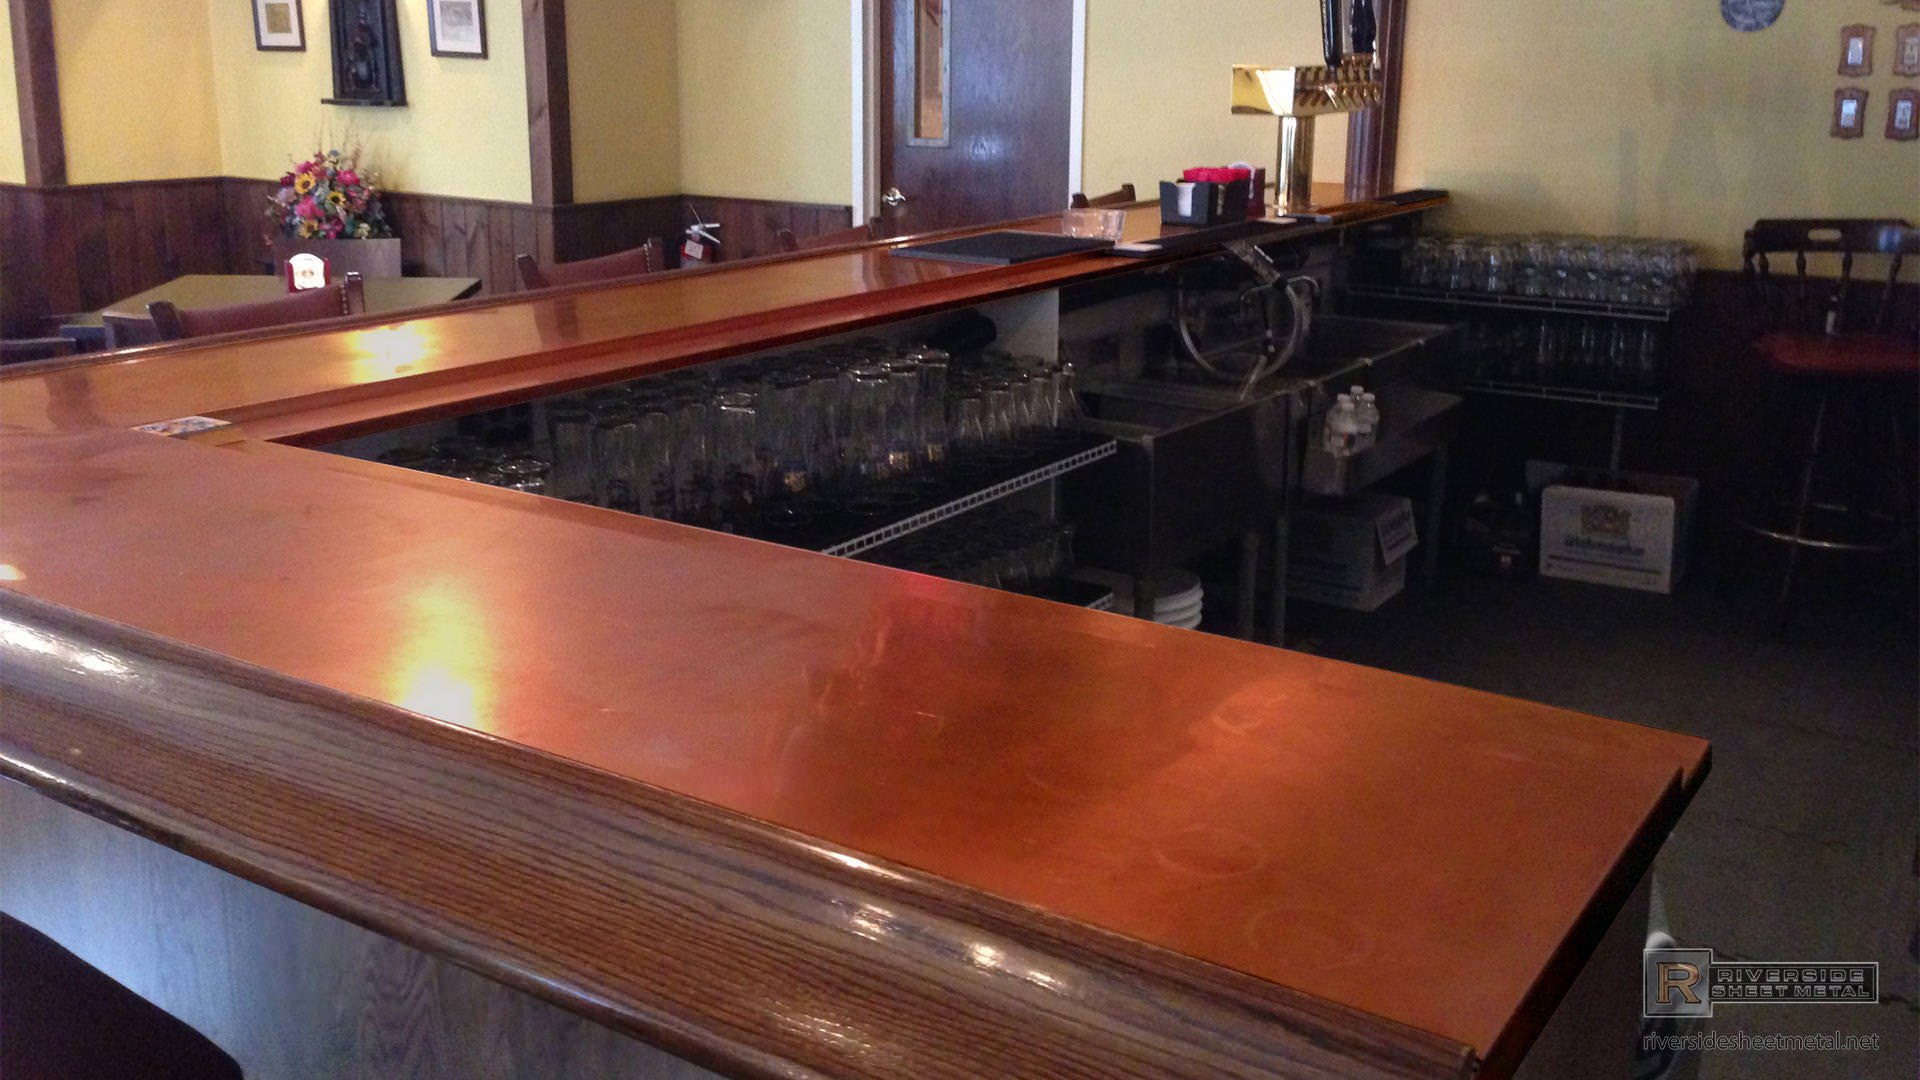 Copper bar top with drink tray - Massachusetts - USA